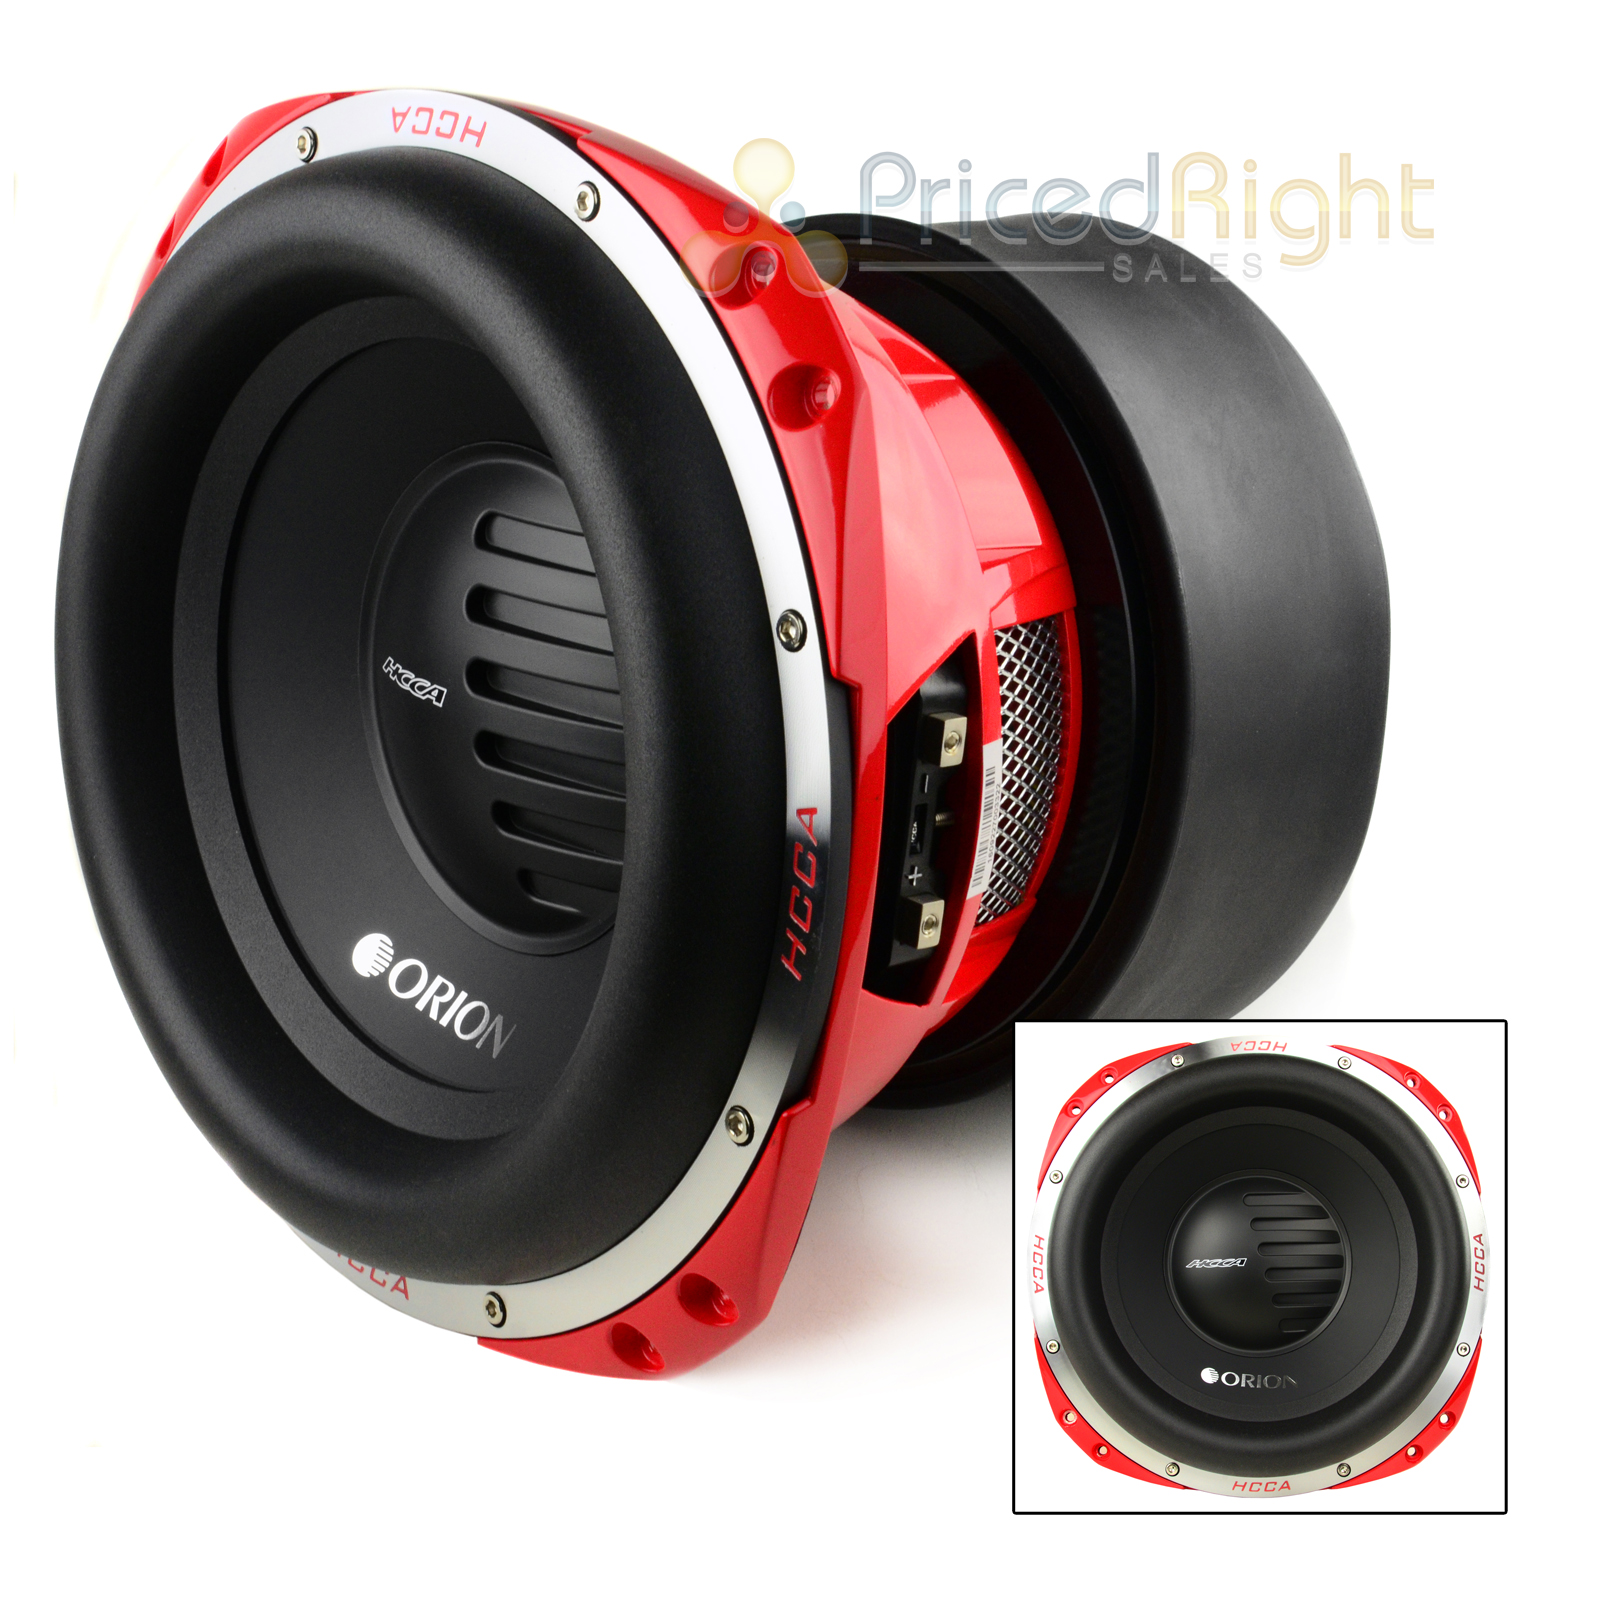 Orion Hcca152 15 U0026quot  Subwoofer 5000 Watt Dual 2 Ohm Voice Coil Bass Competition Sub 93207061493